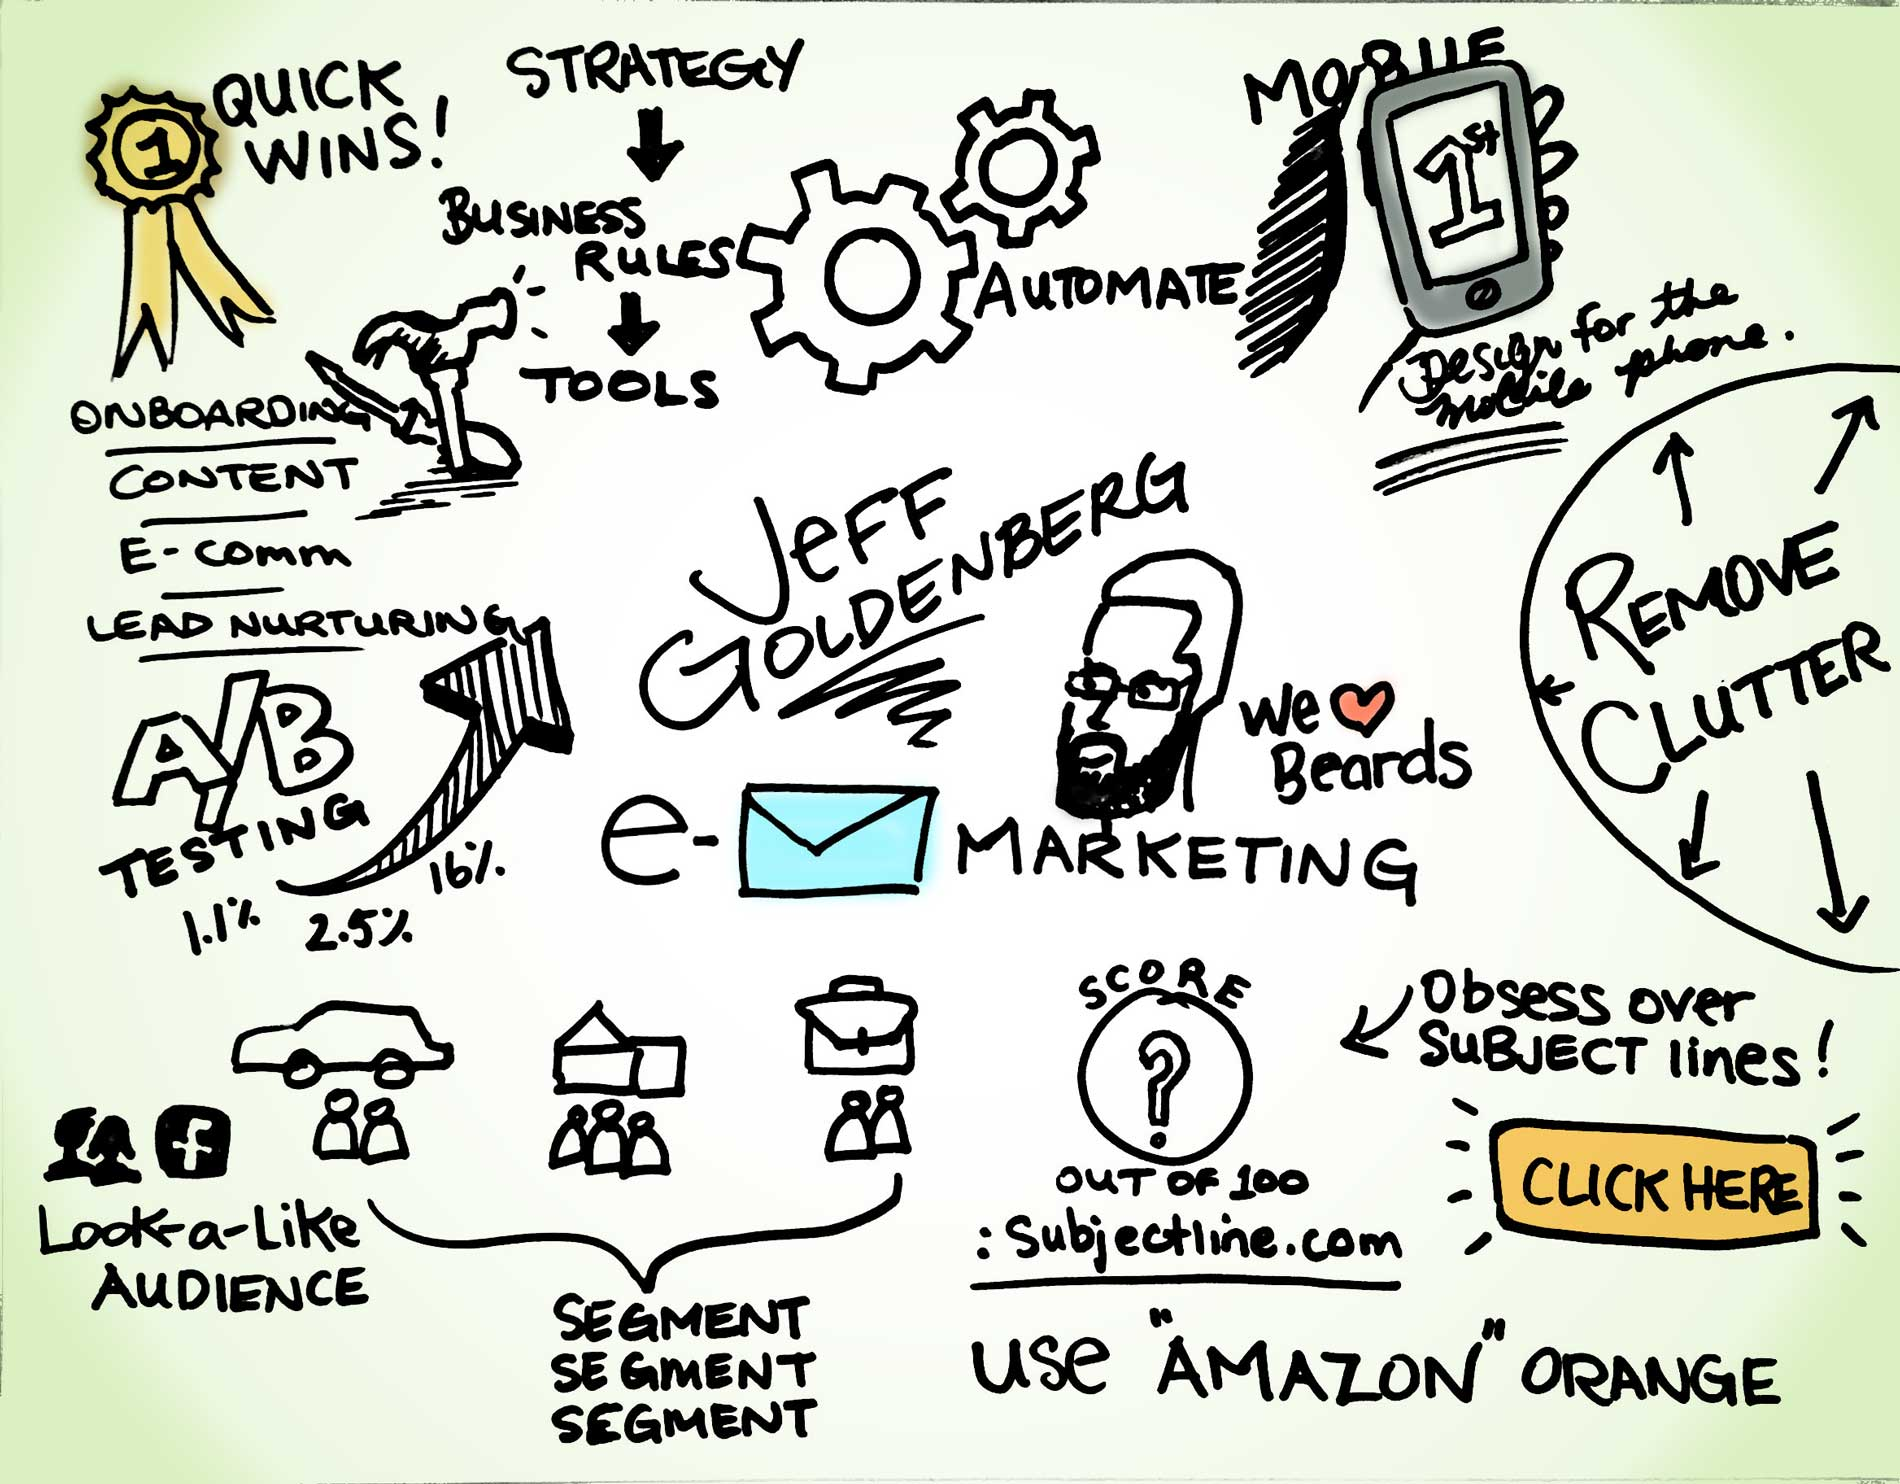 Jeff Goldenberg inboundcon presentation